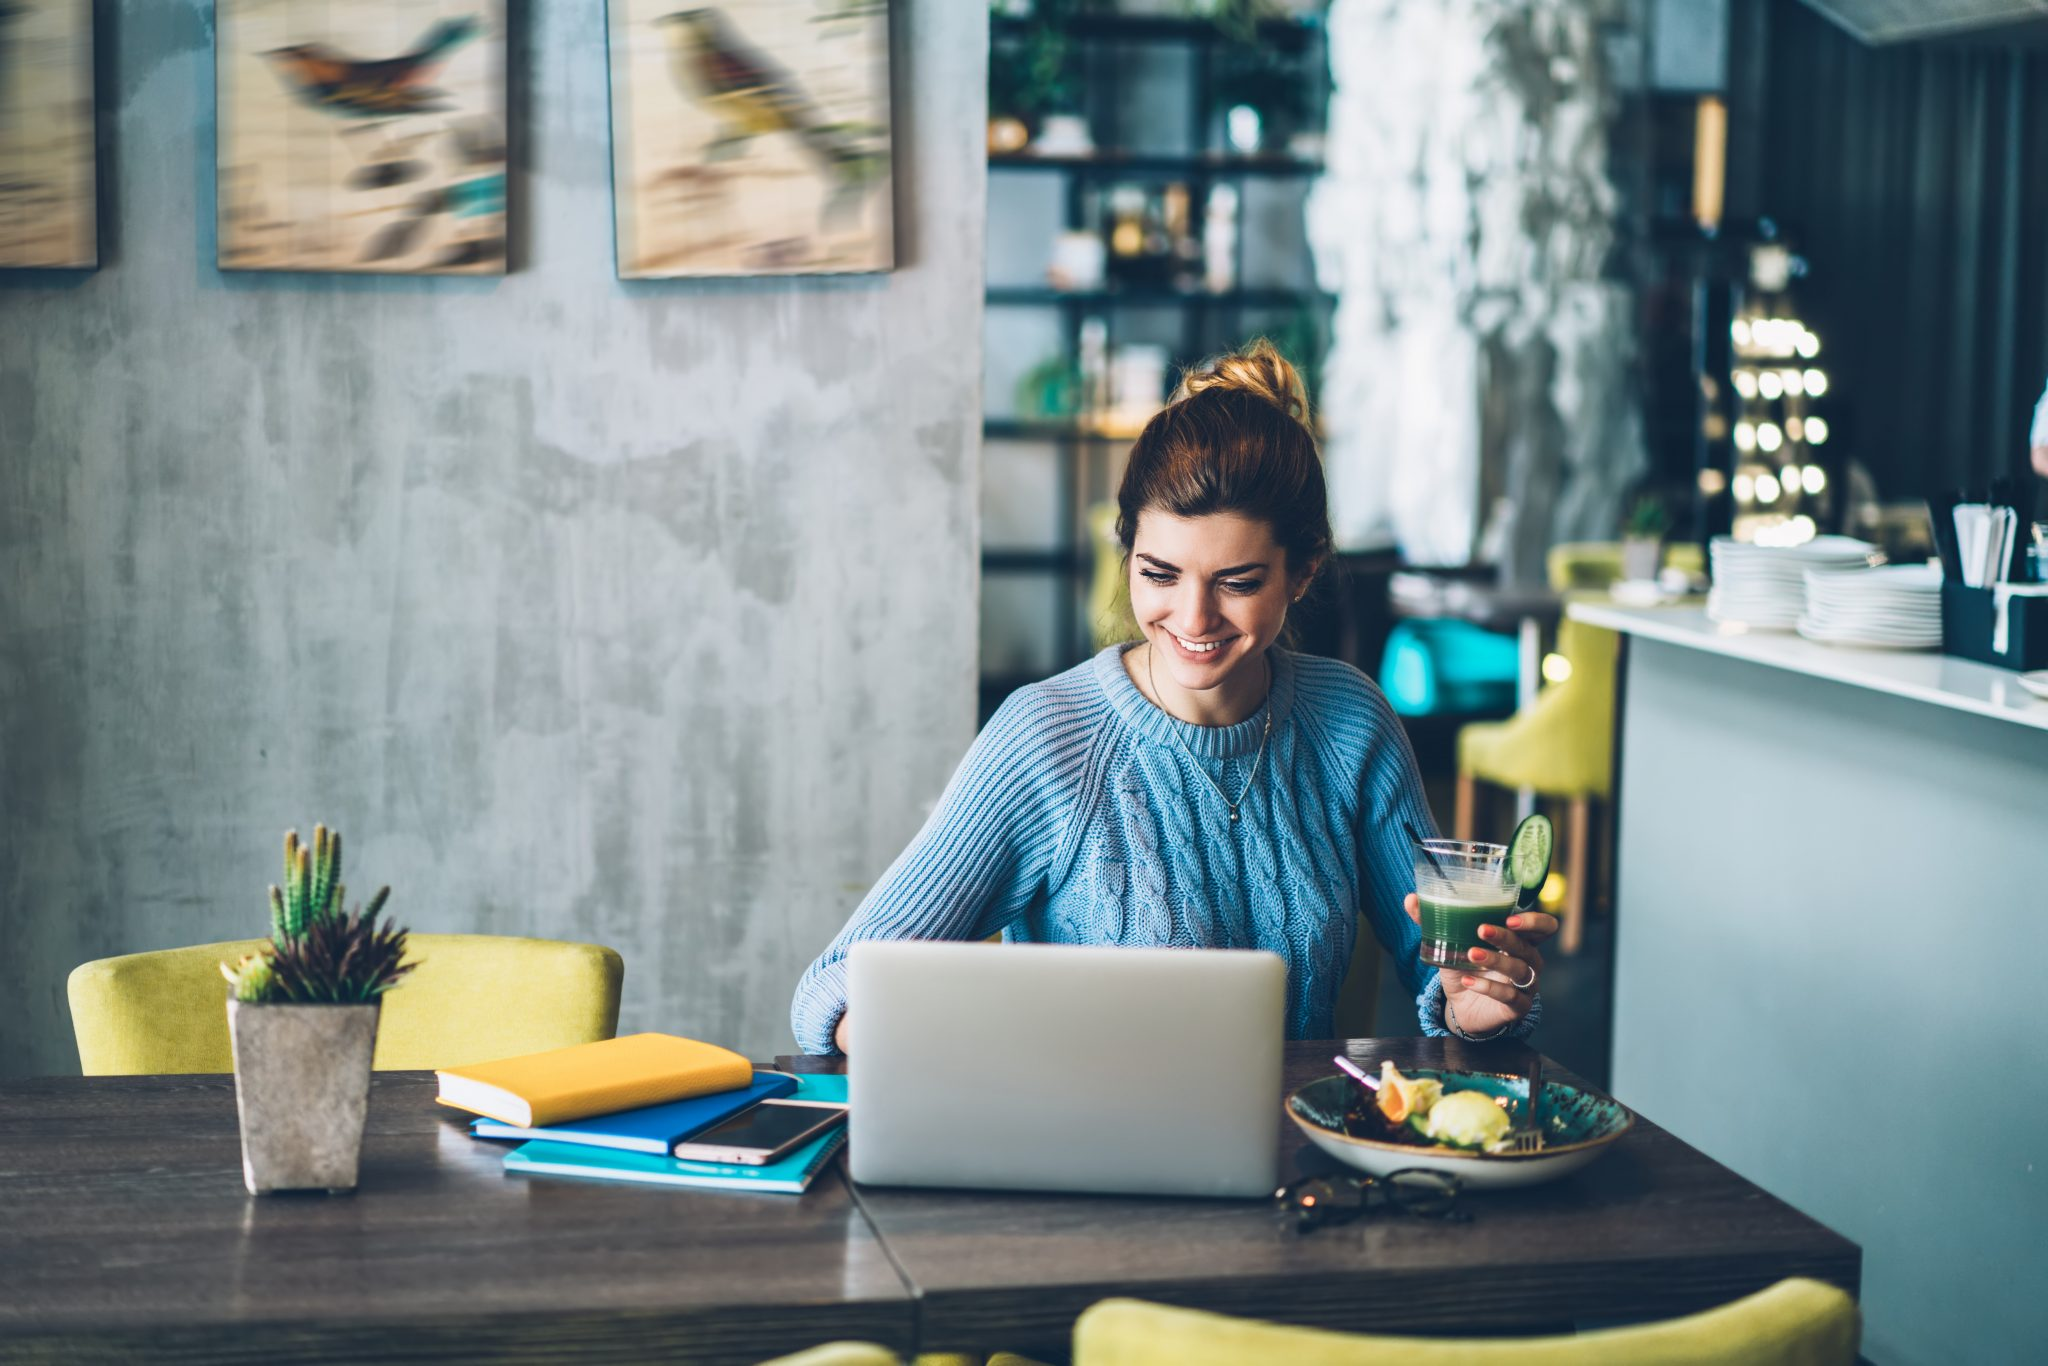 How To Hire a Virtual Assistant For Your Agency (5 Simple Steps)